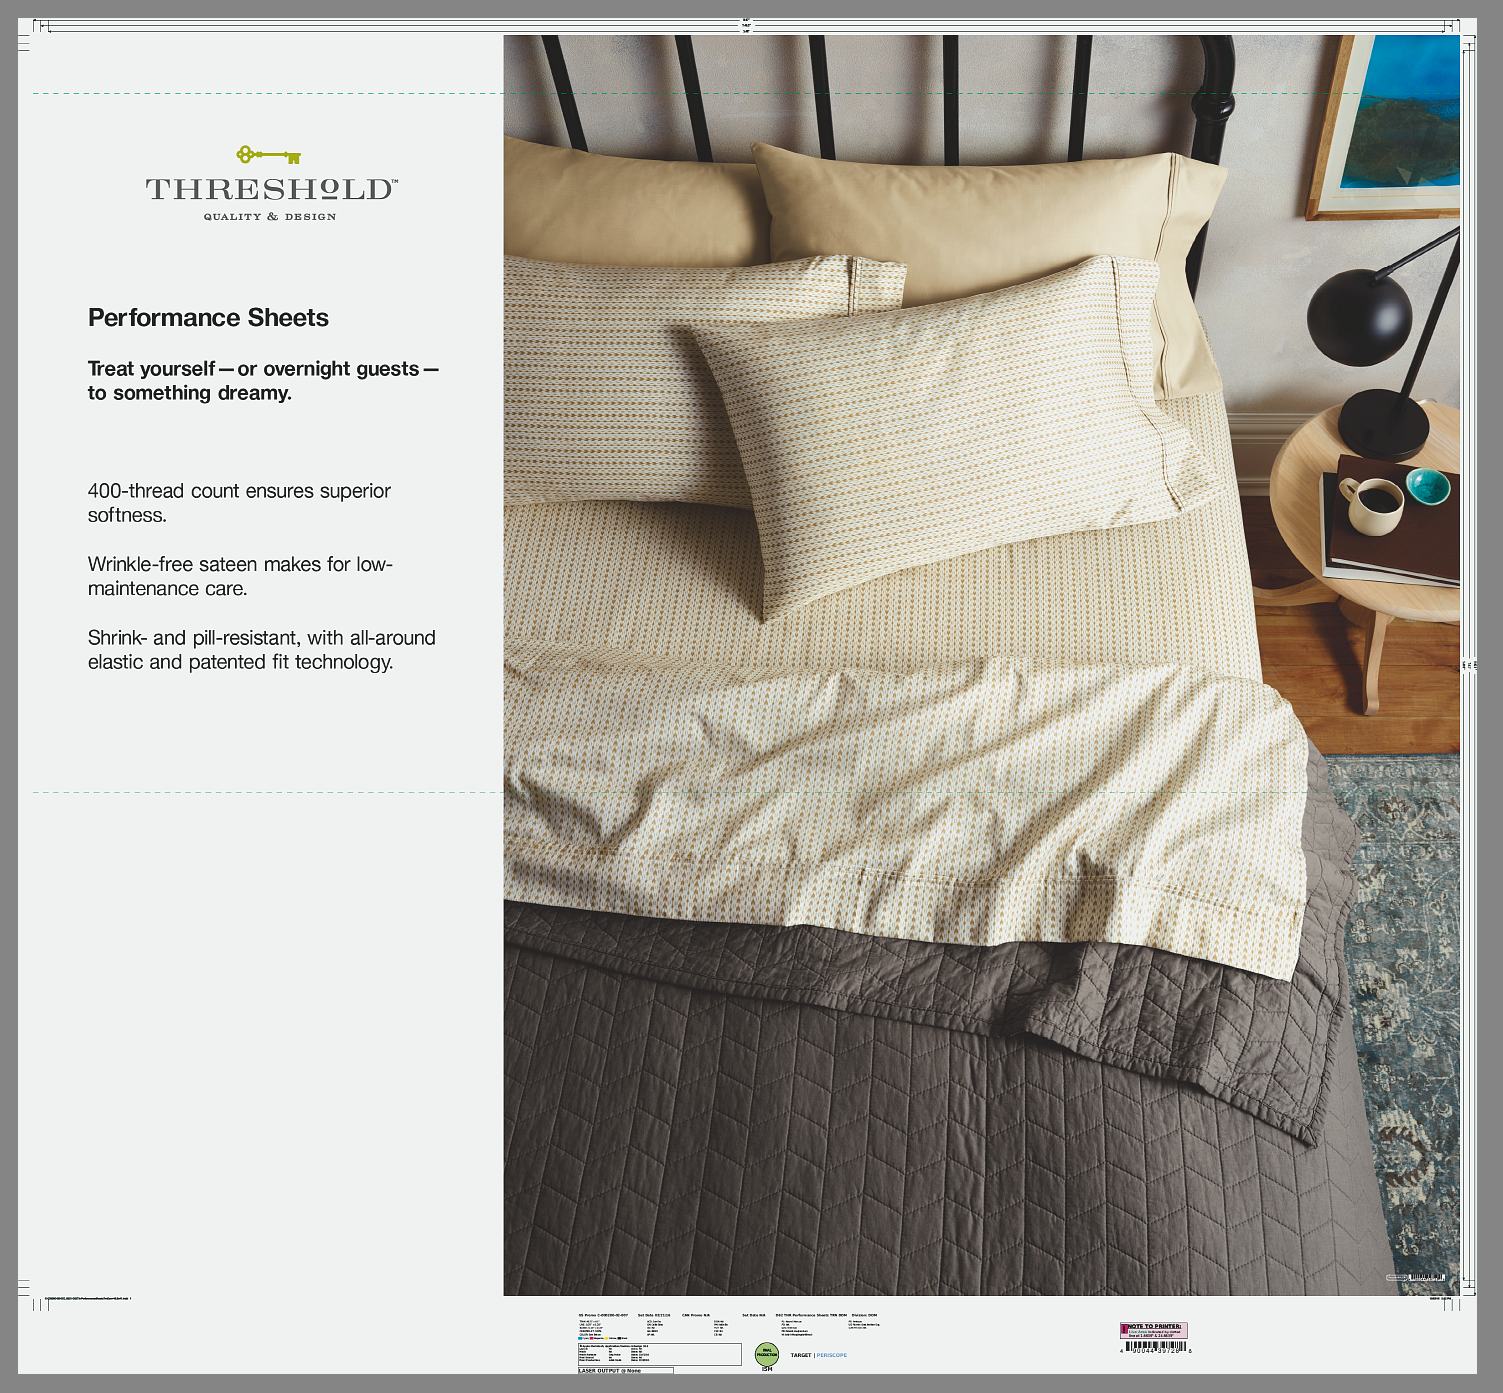 Home_C2_2016 Threshold sheets.png